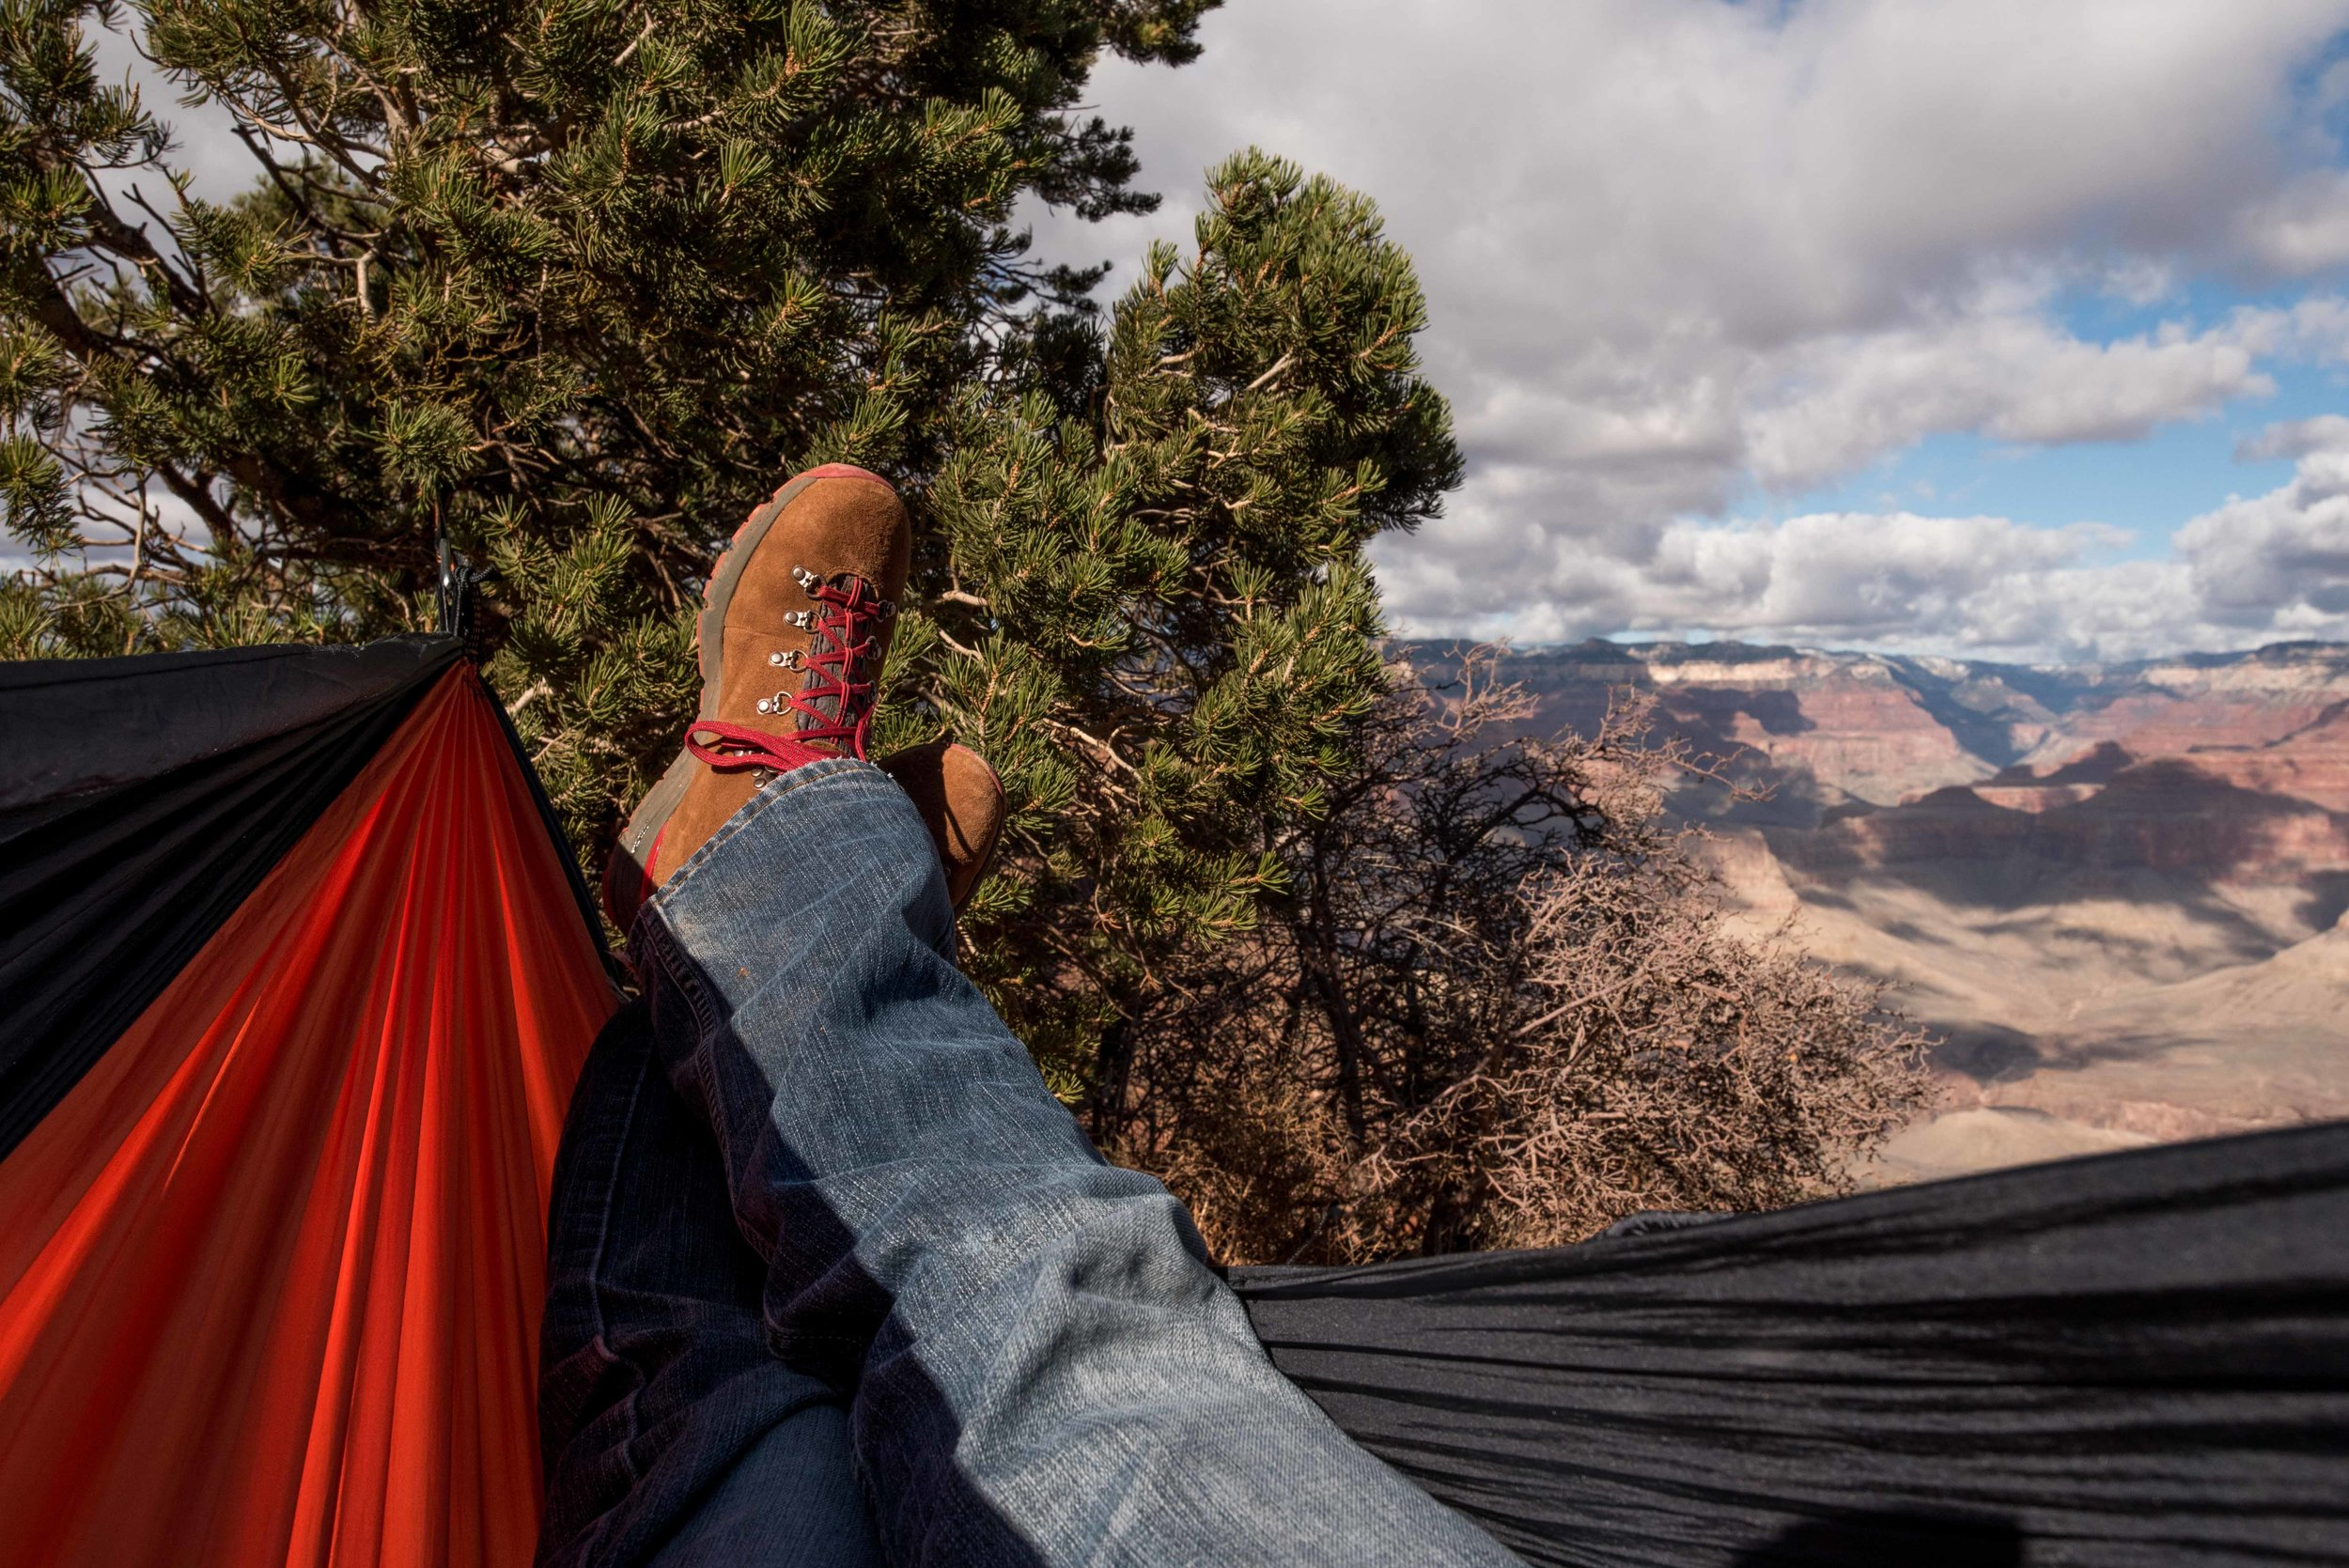 Resting in a hammock before we climbed back up.